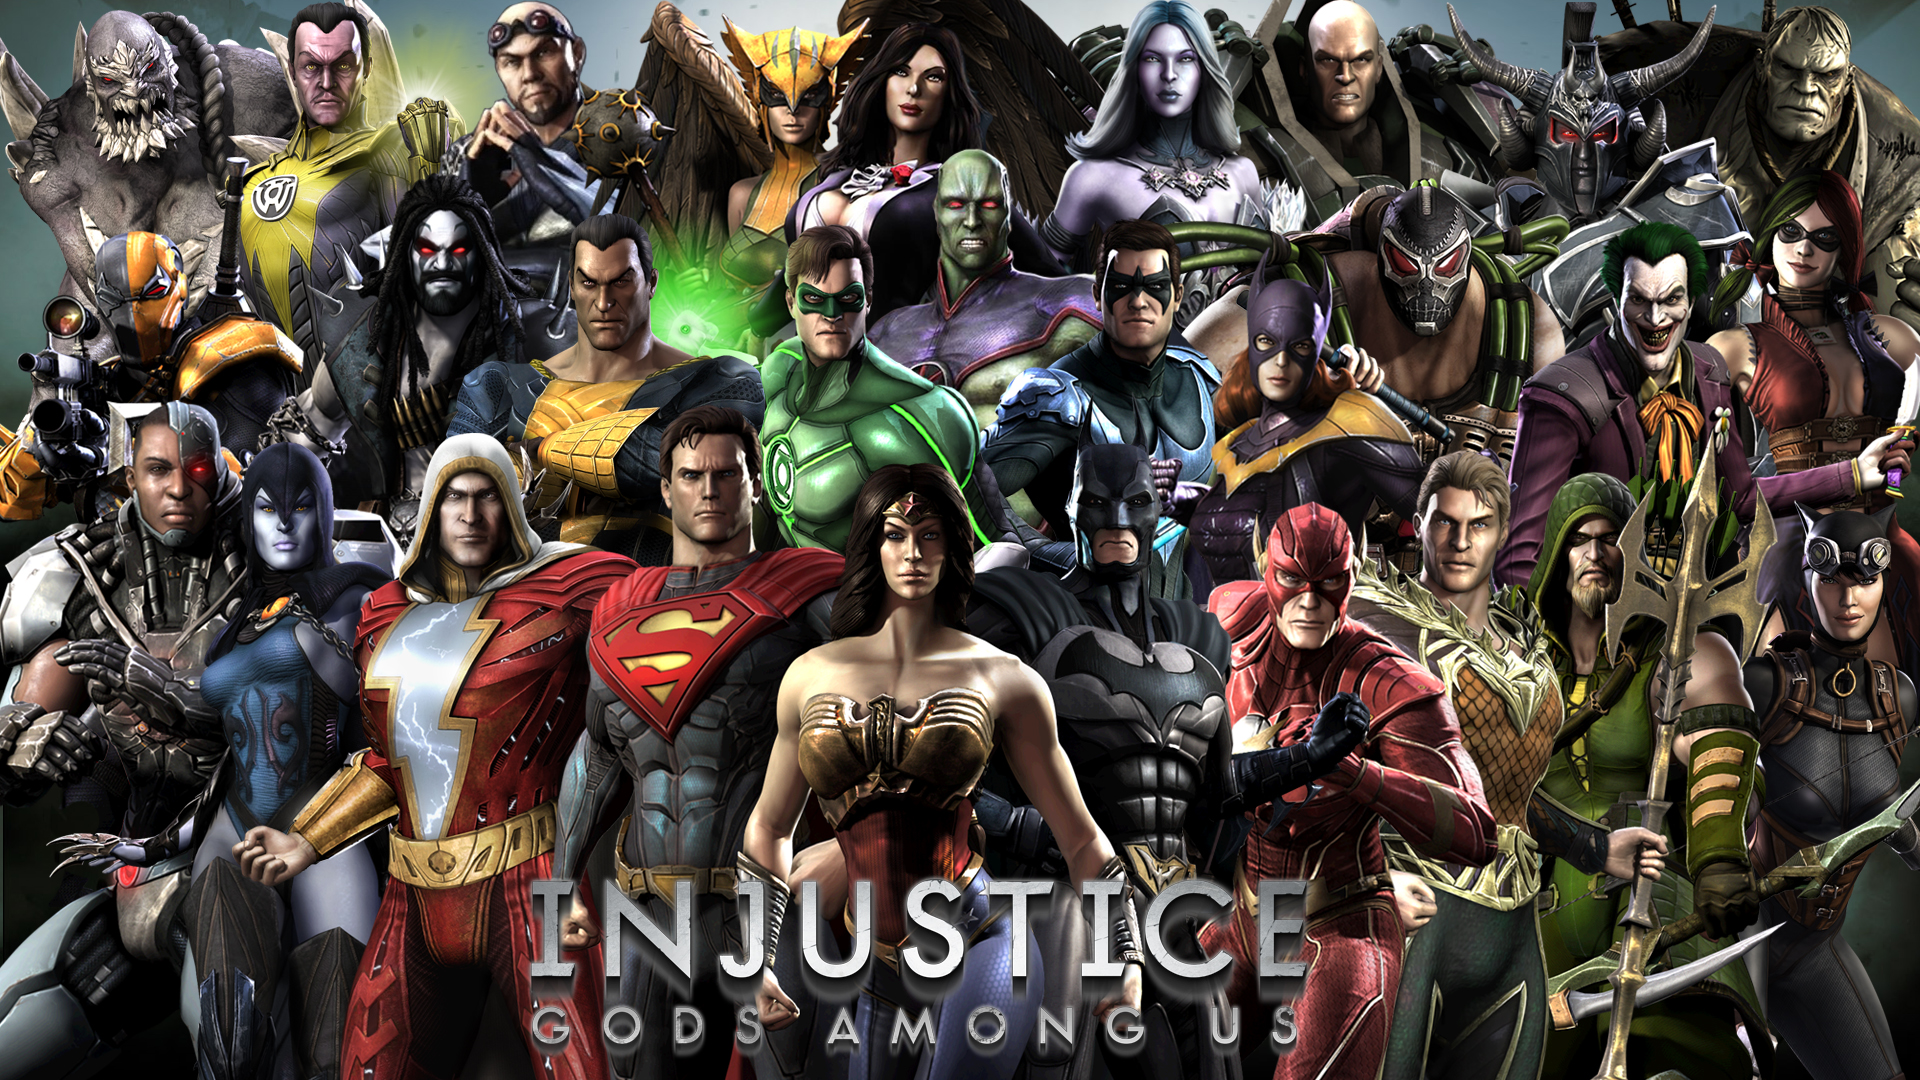 injustice gods among us apk data